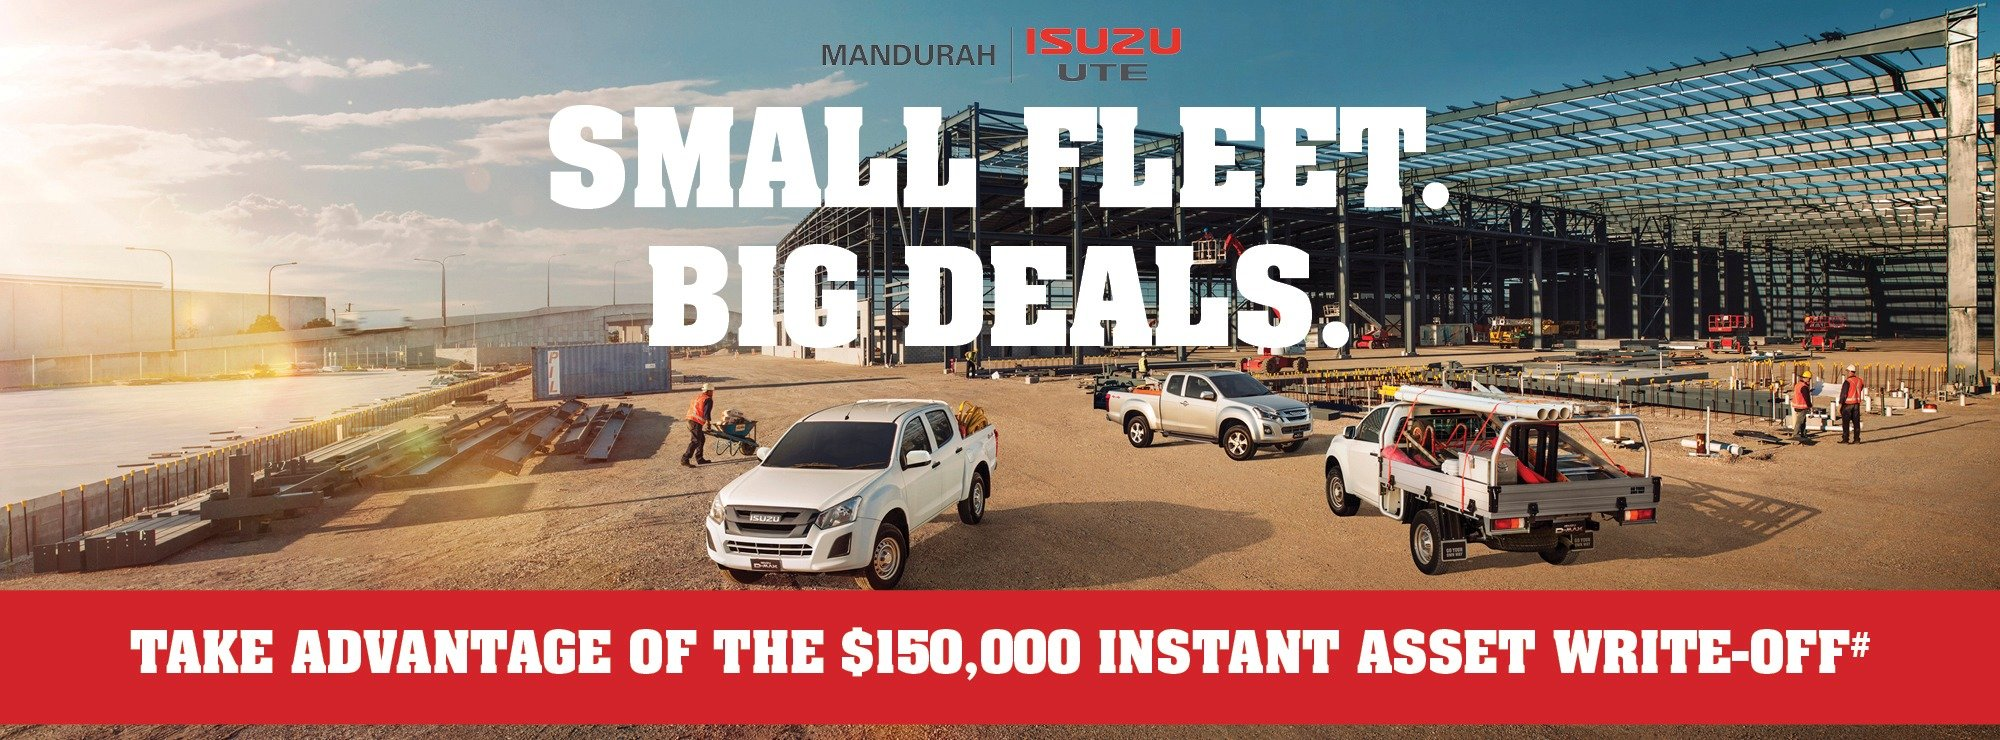 Small fleet big deals